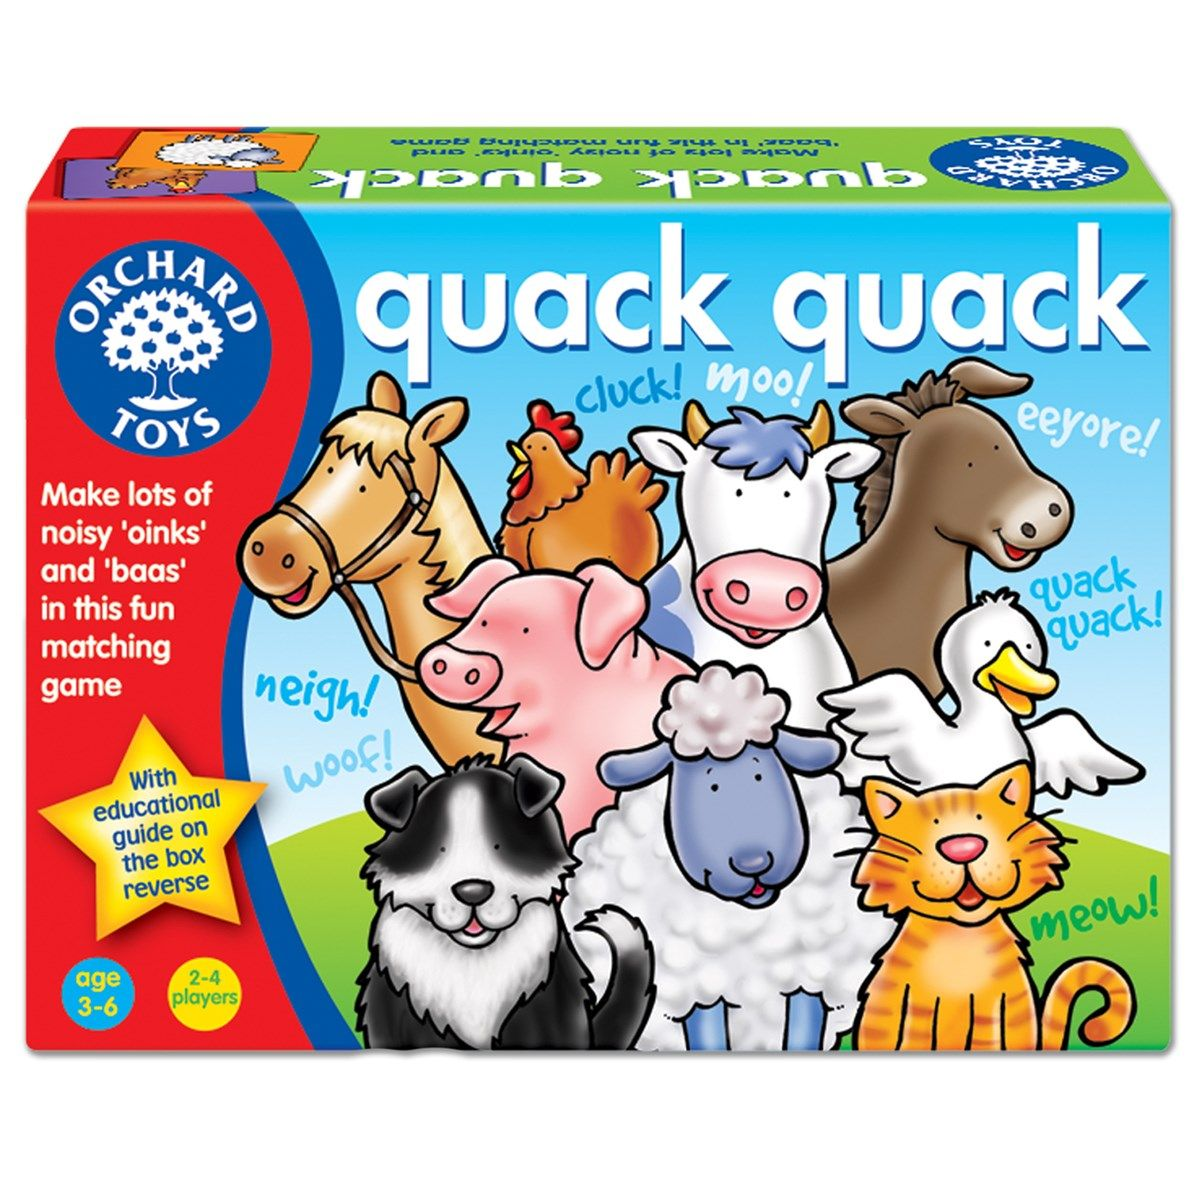 Quack Quack | Orchard toys, Fun learning games, Toddler fun